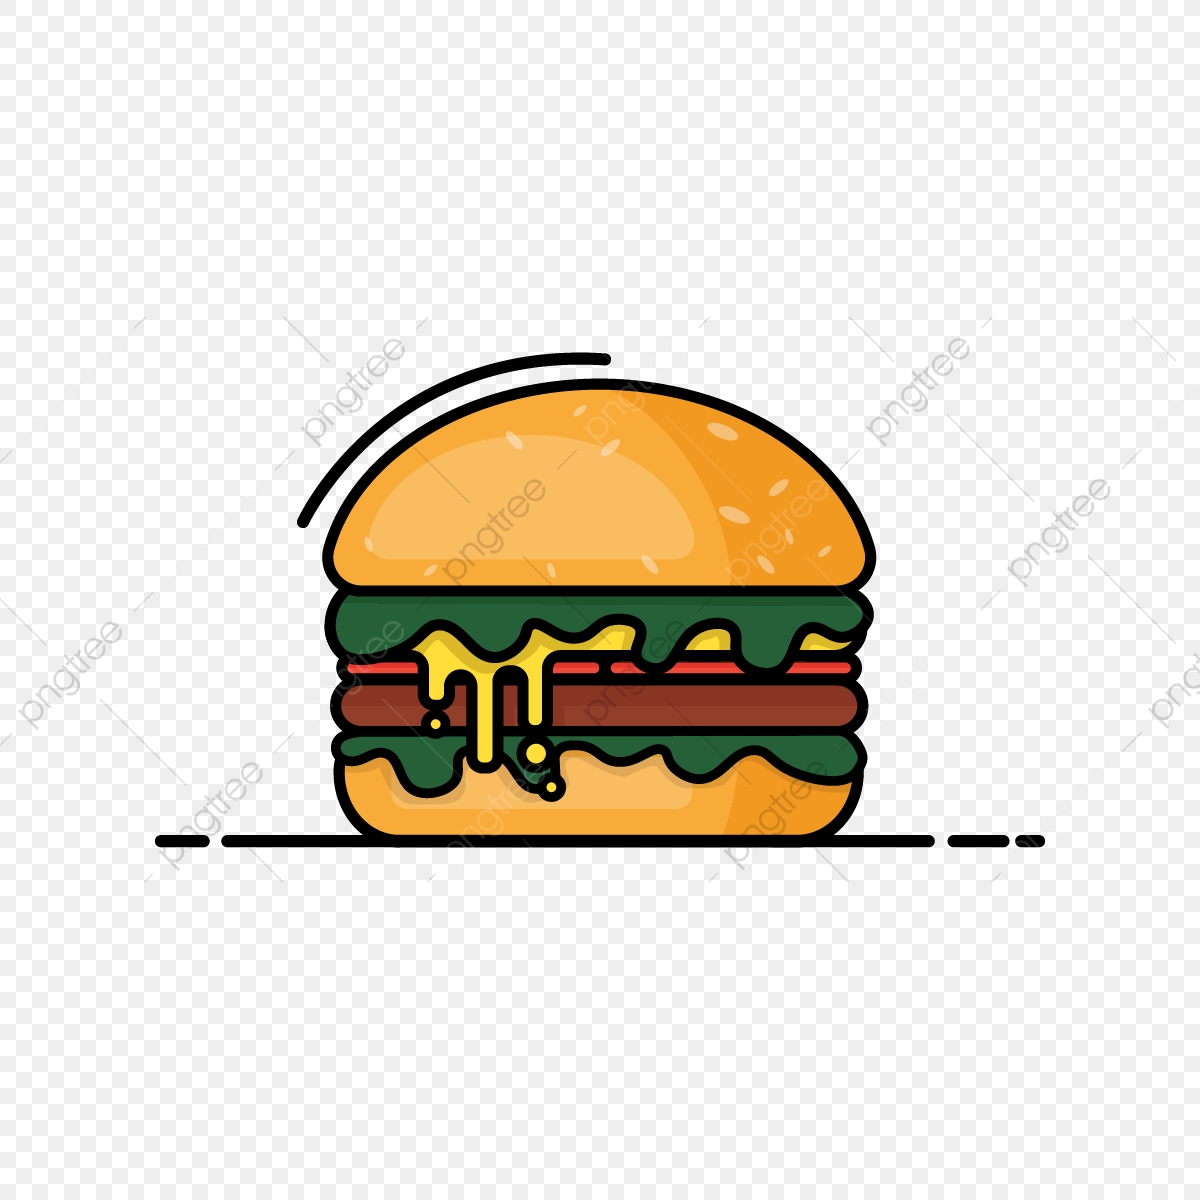 burger icon png burger vector icon, burger, illustration, food png and